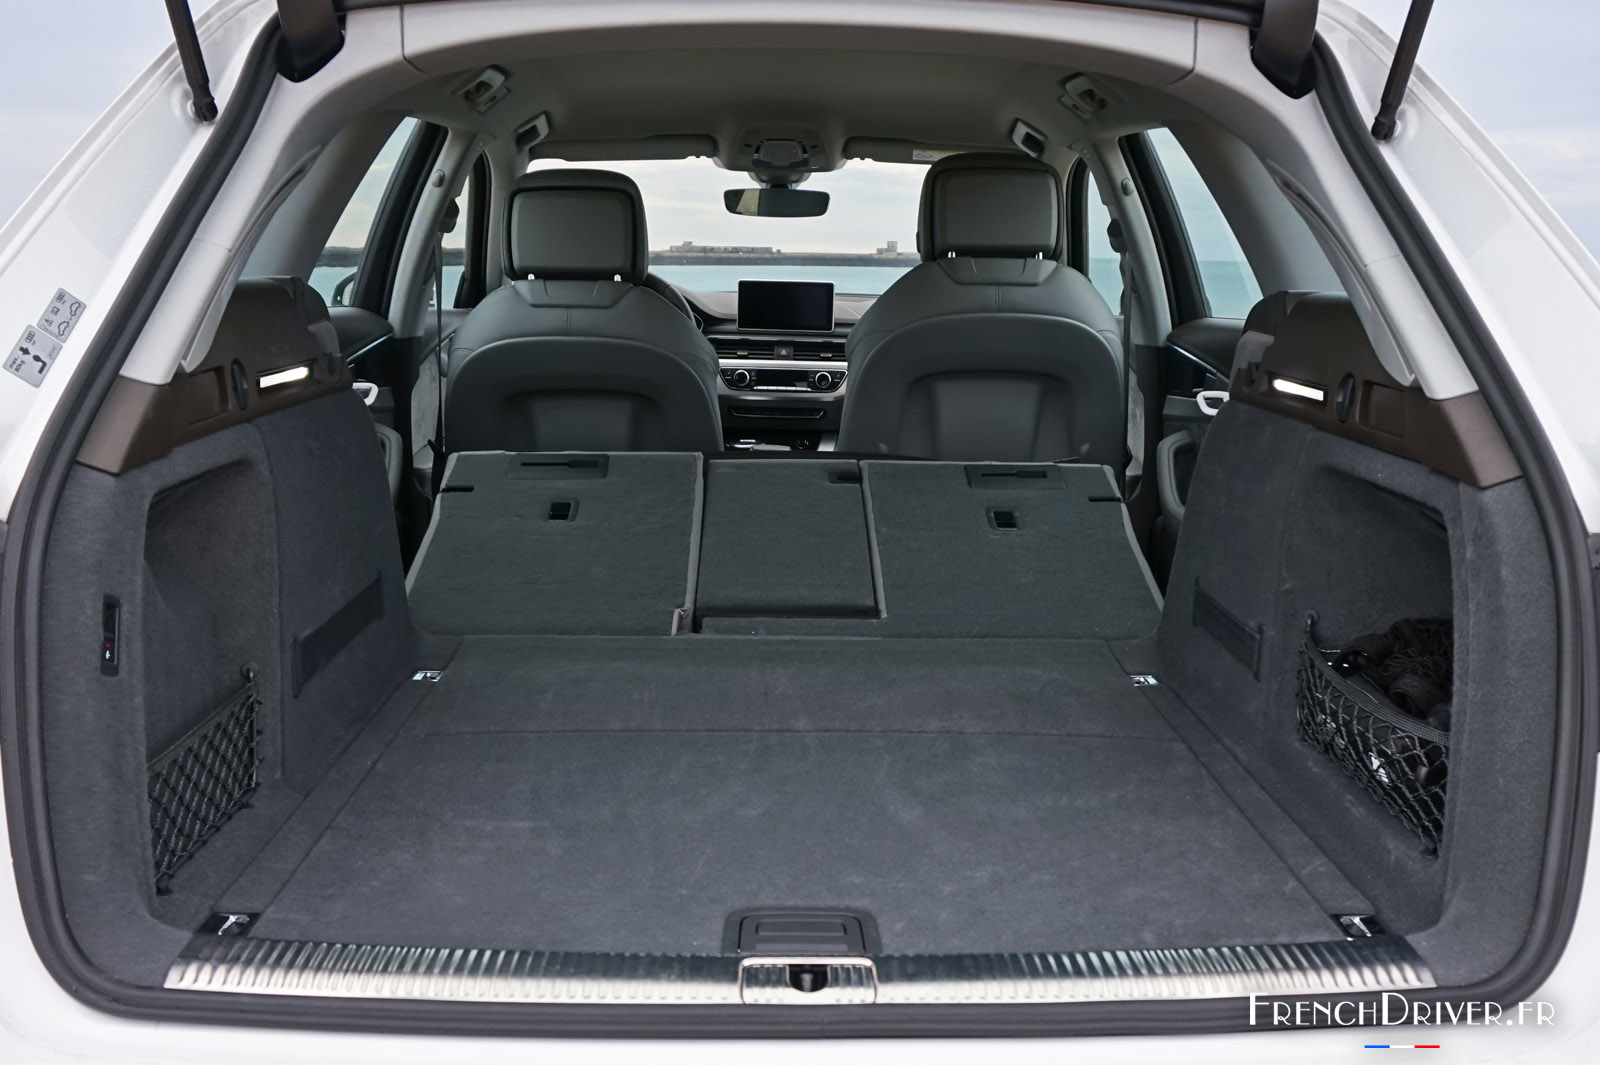 essai audi a4 allroad 3 0 tdi 218 pr te pour l 39 aventure french driver. Black Bedroom Furniture Sets. Home Design Ideas